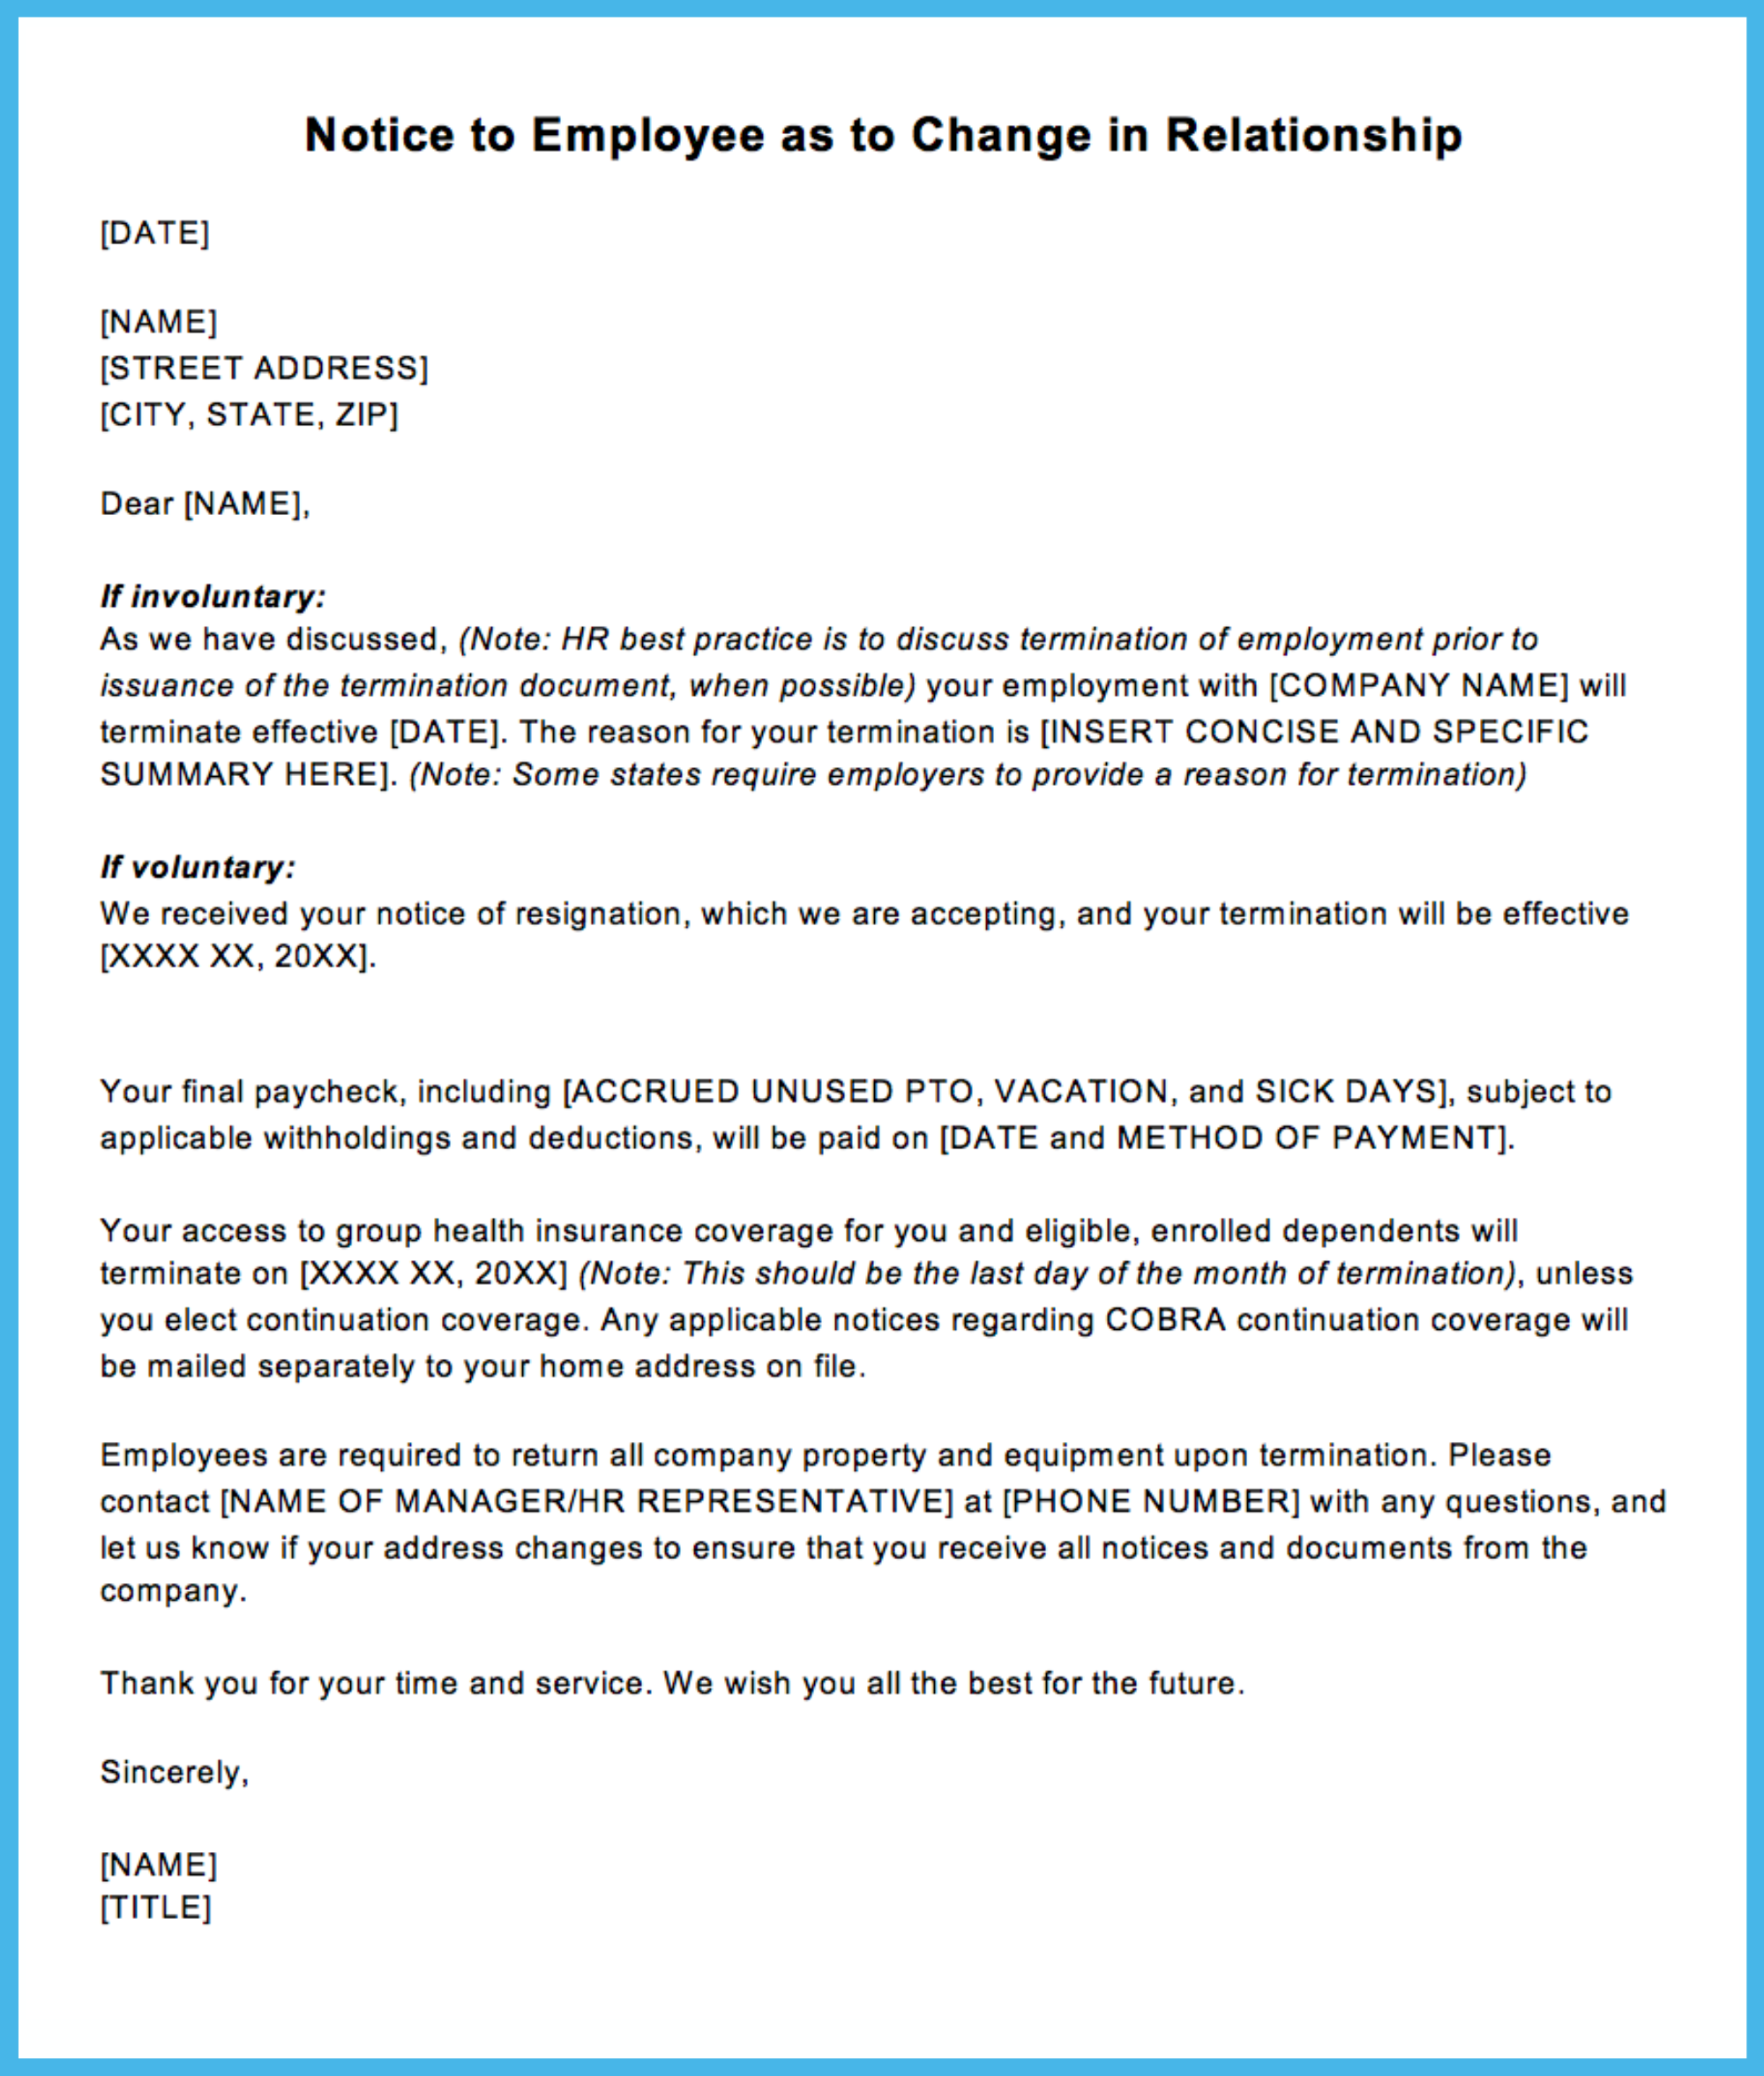 sample termination letter for letting an employee go justworks